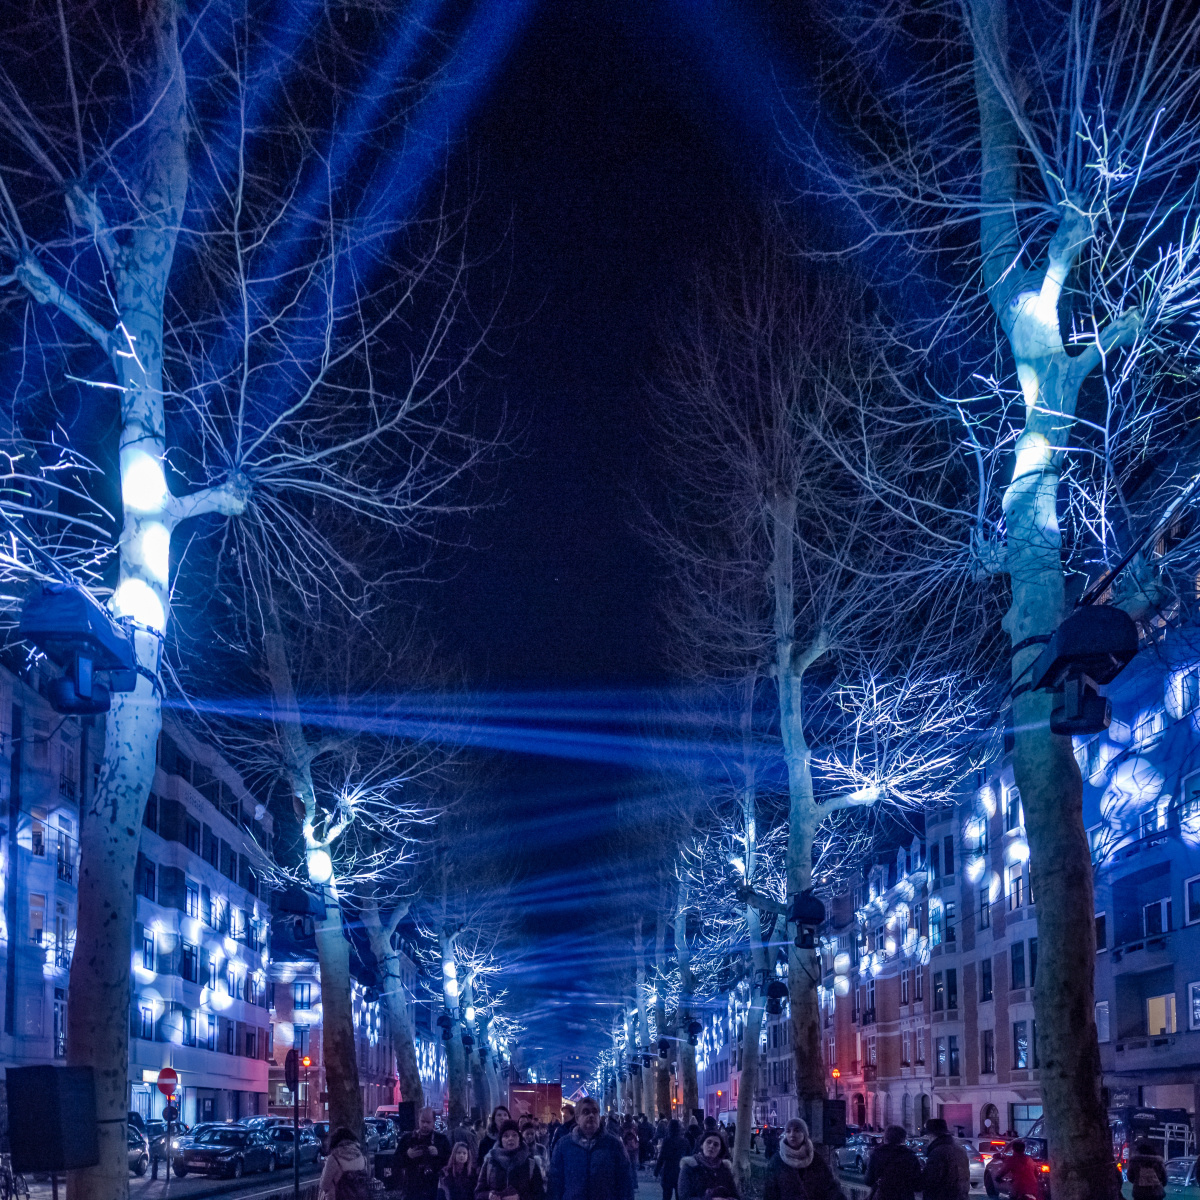 Bright Brussels Festival 2019, Jean-Paul Remy, Visit Brussels